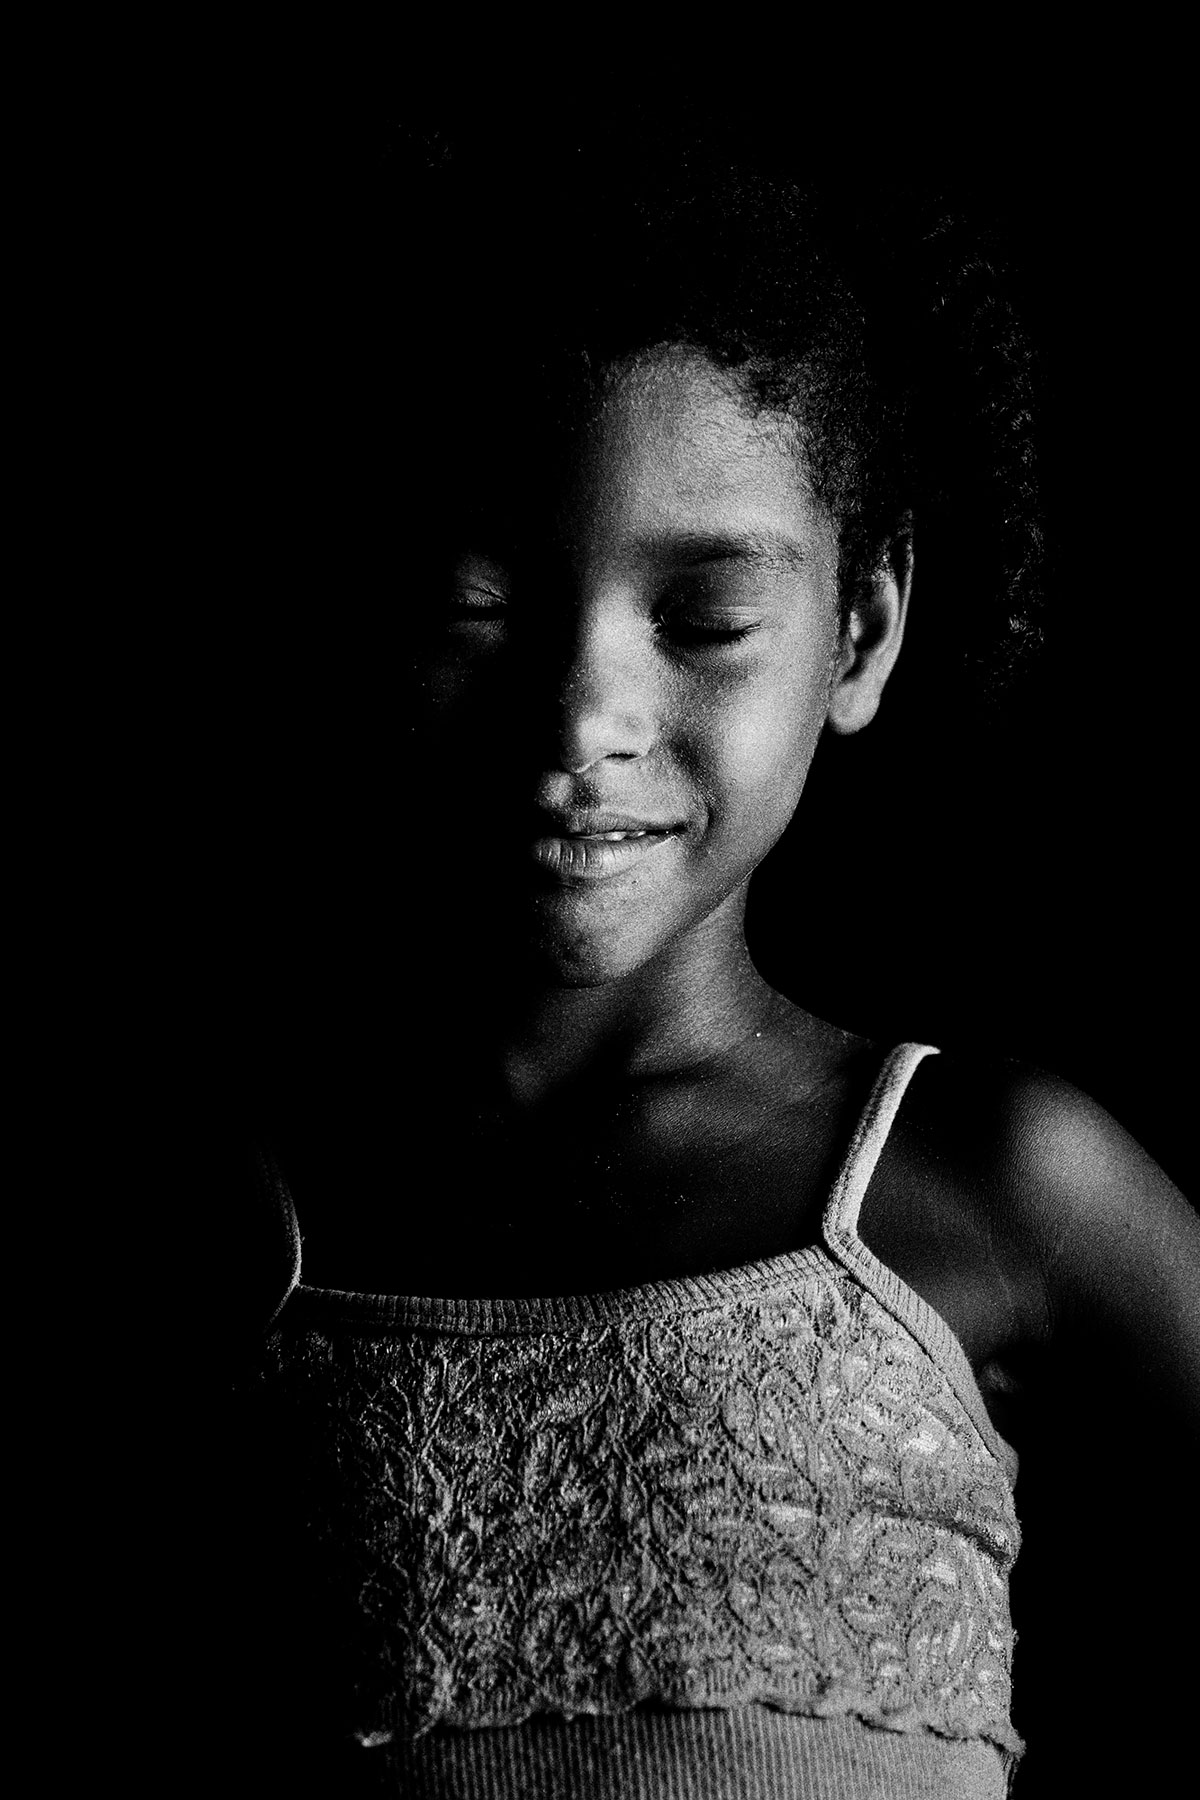 Eyes Closed Portrait of a Child from Ilha dos Lençóis: Black and White Portrait Photography by Jean Tran and Élysée Lang